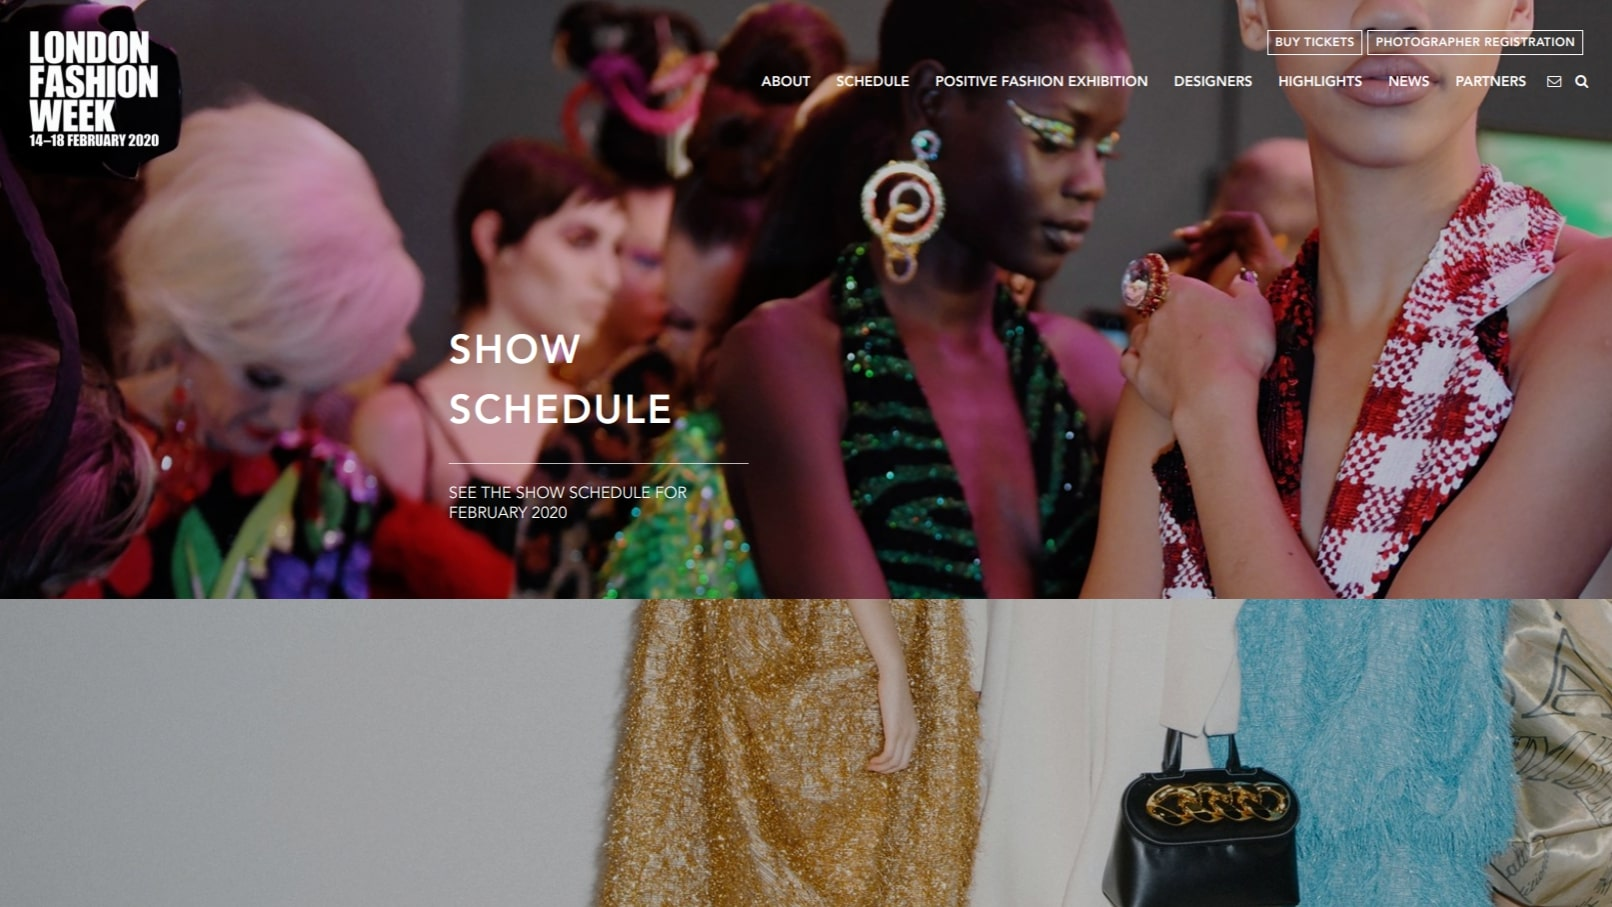 How To Find Work At London Fashion Week Event Academy